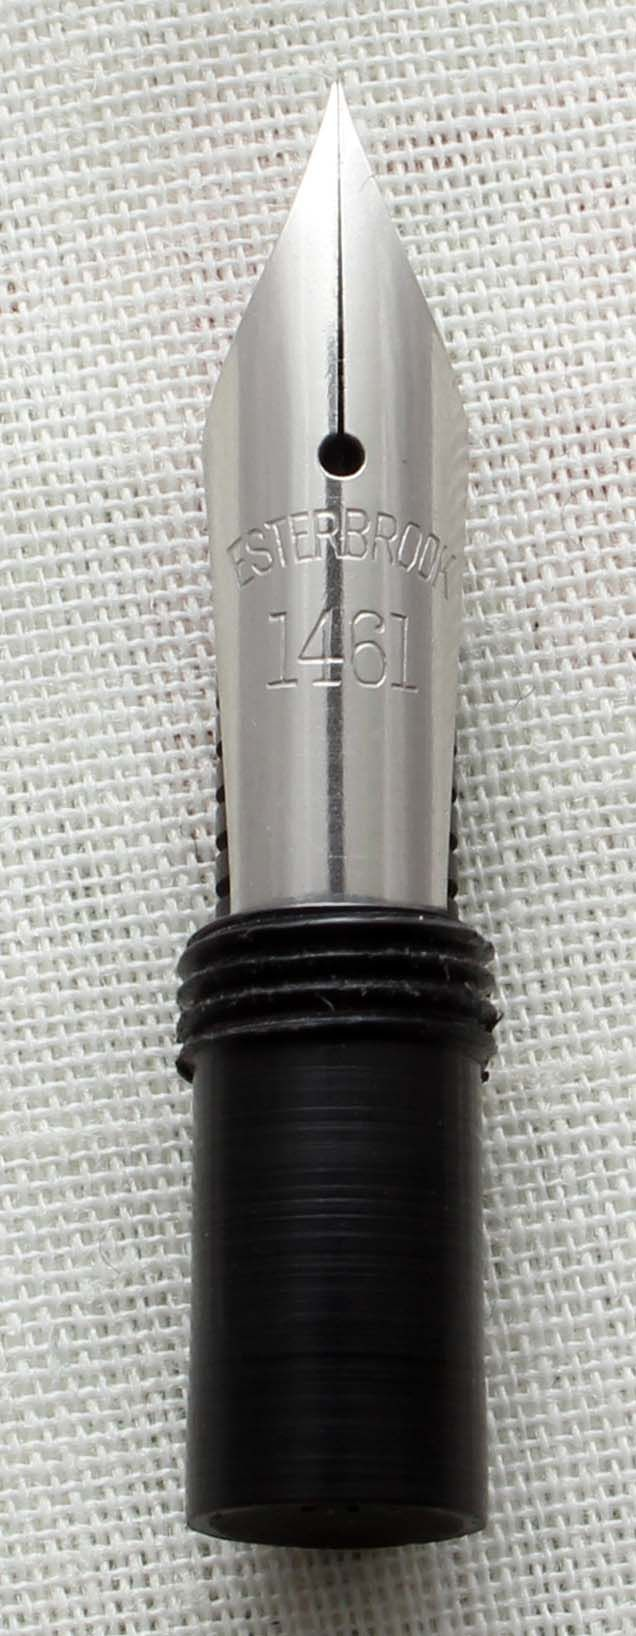 Esterbrook 1461 Nib. (Medium) N524